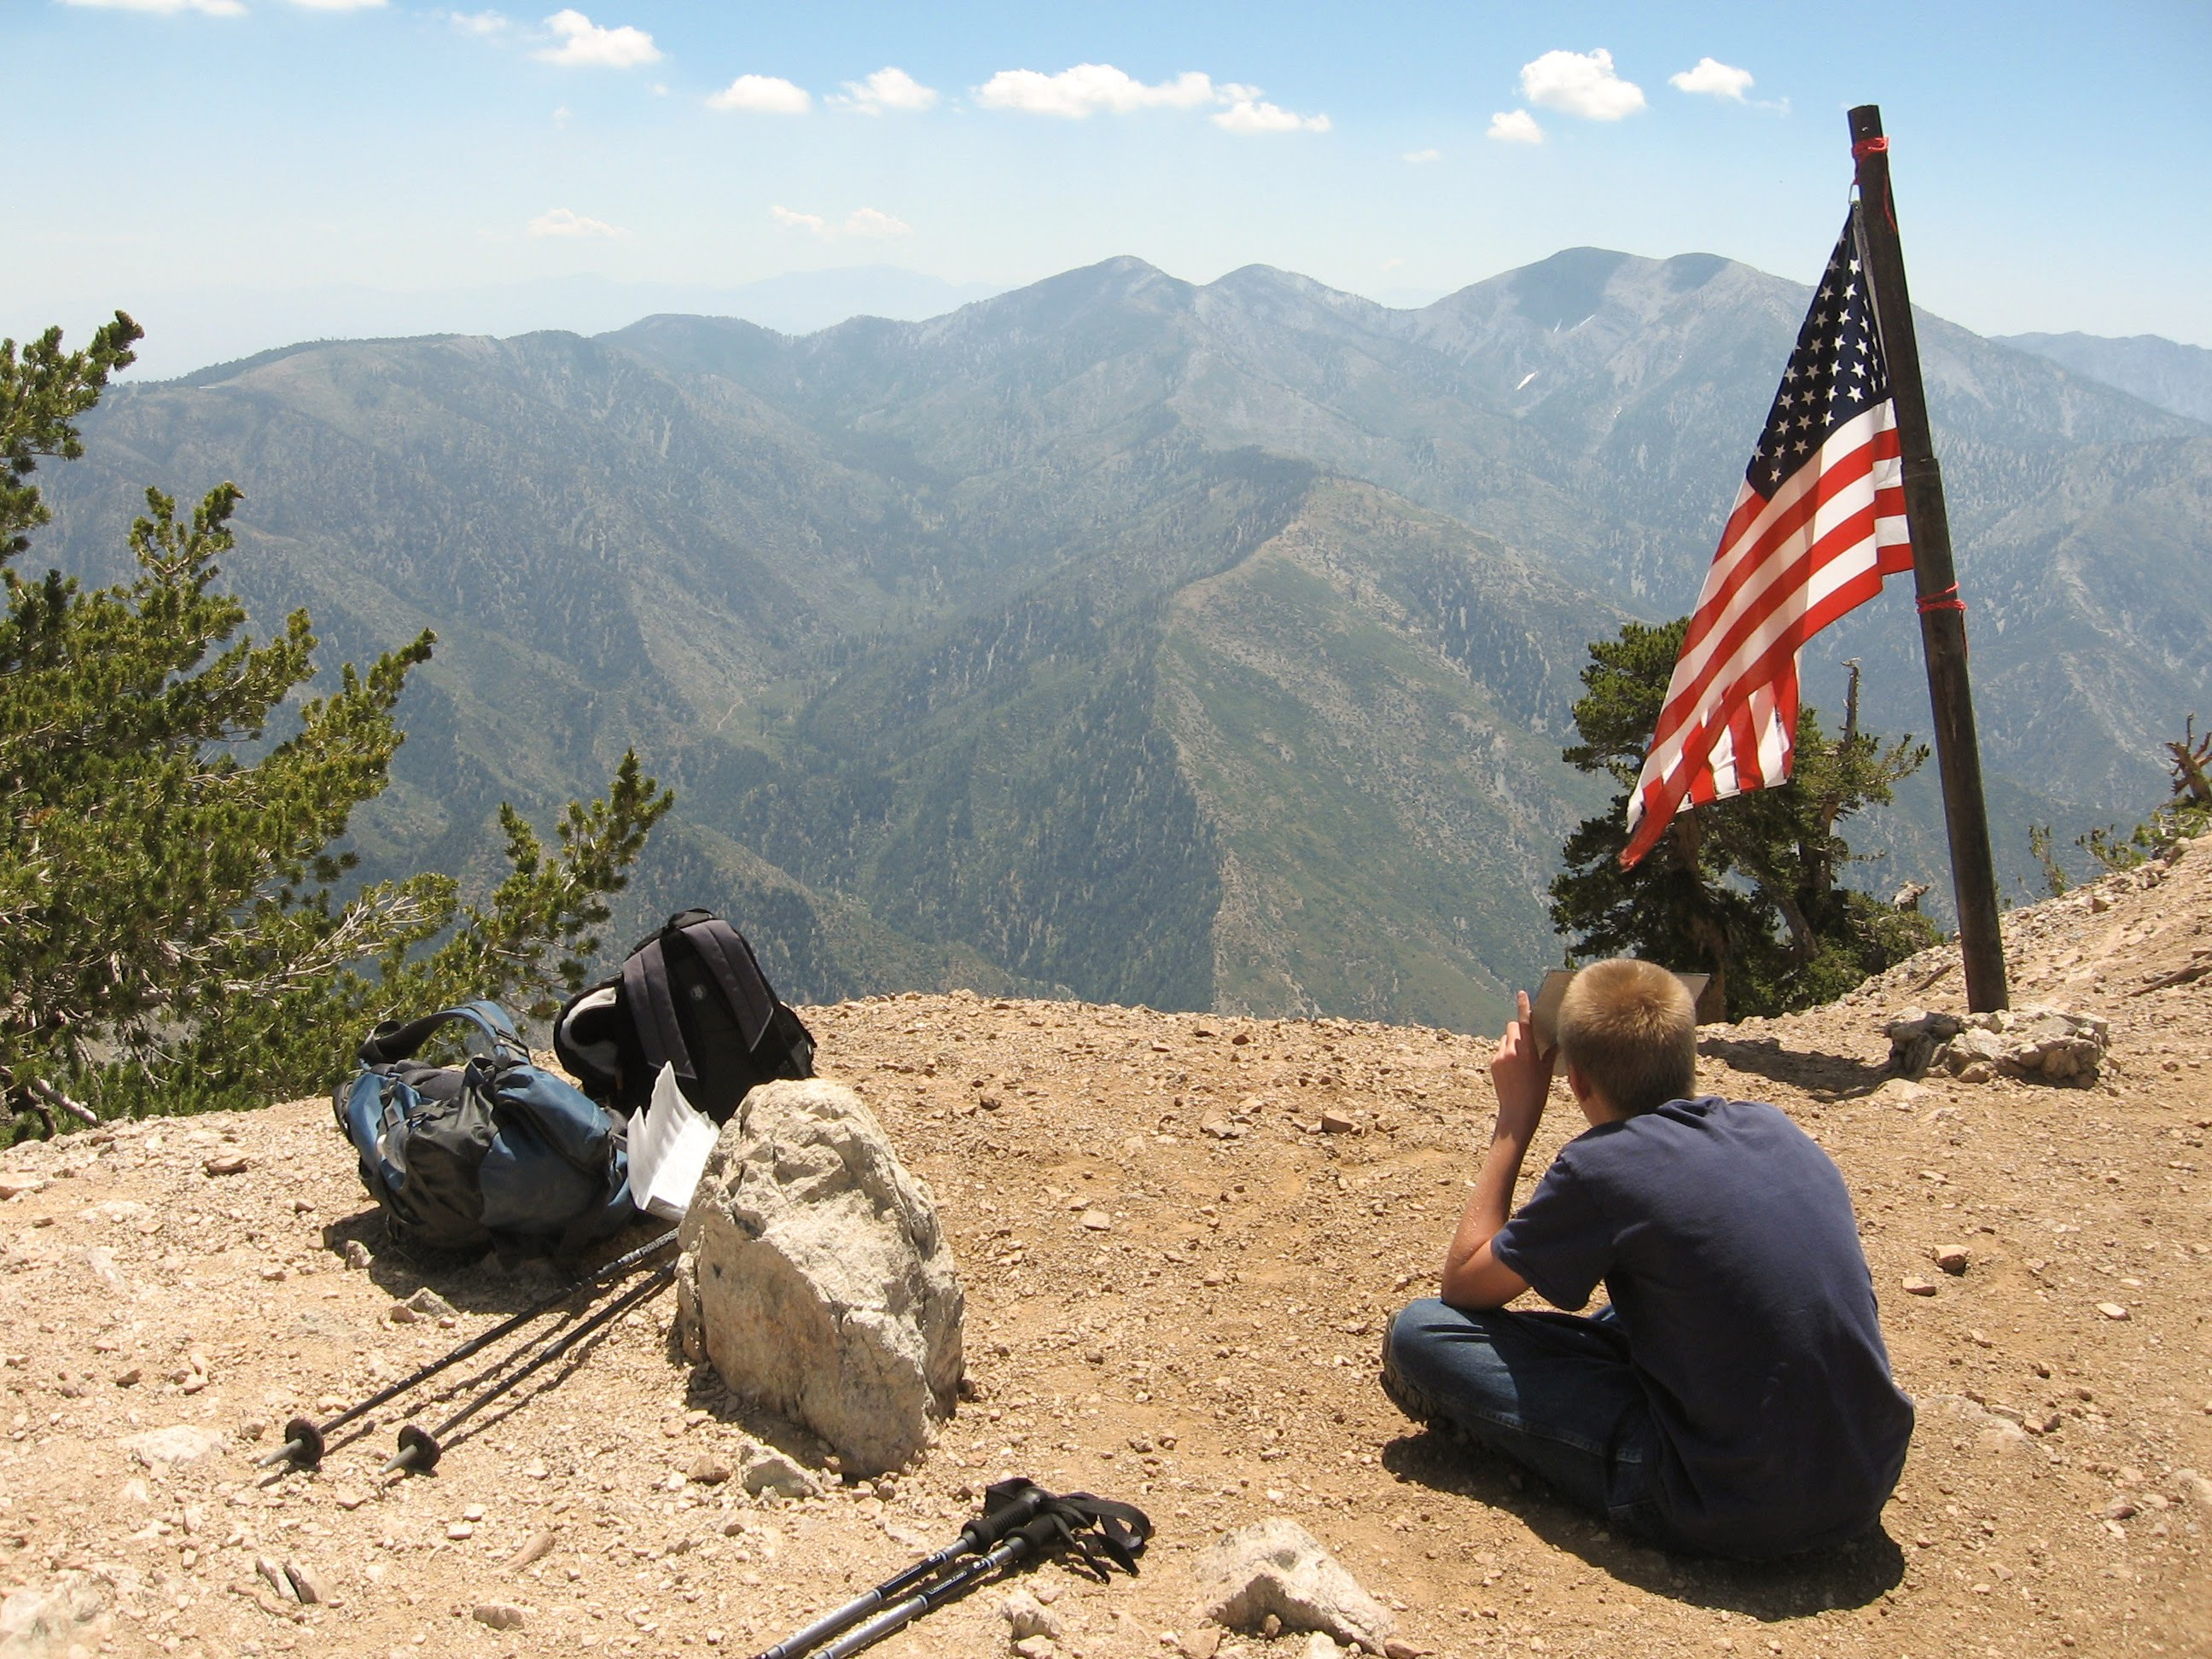 On Target on Mt. Baden Powell.